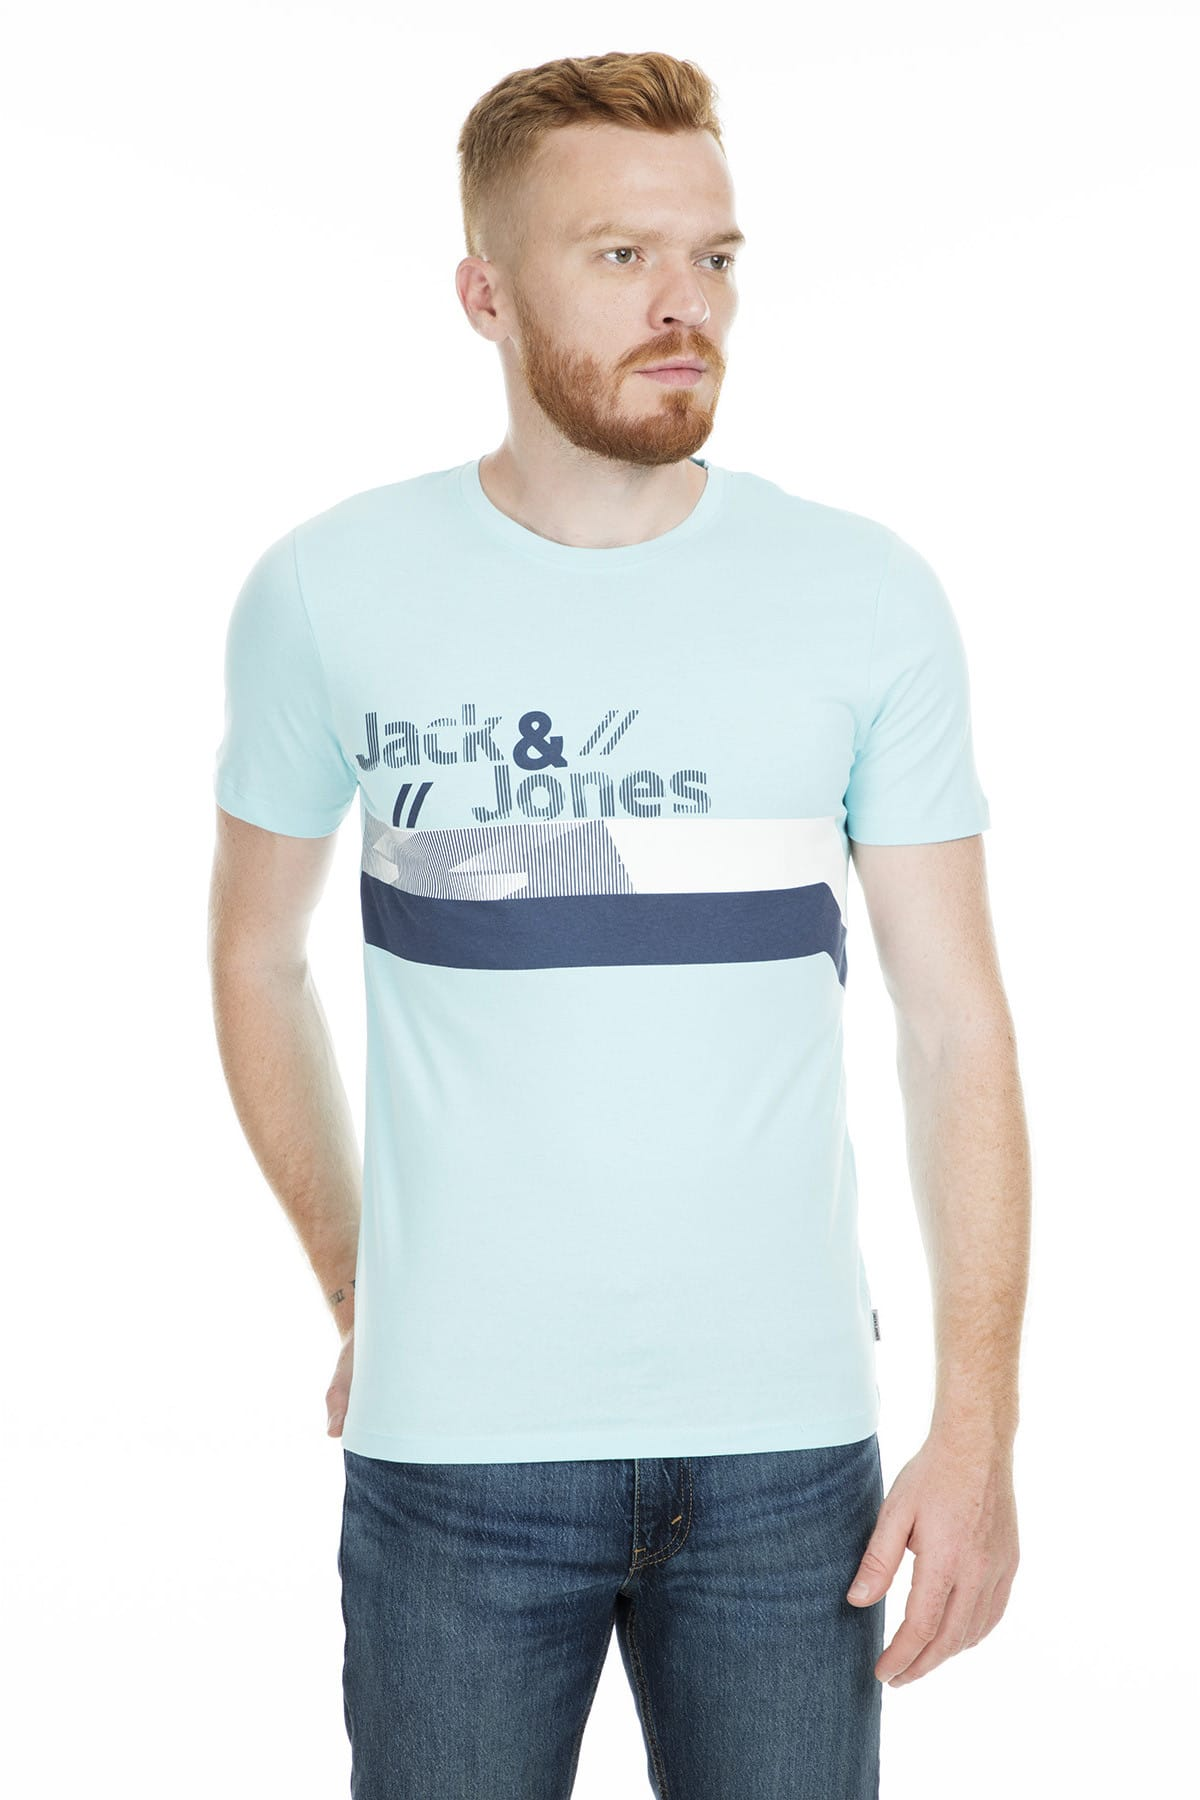 Jack & Jones T-Shirt - Stairs Core Tee Ss 12152308 1